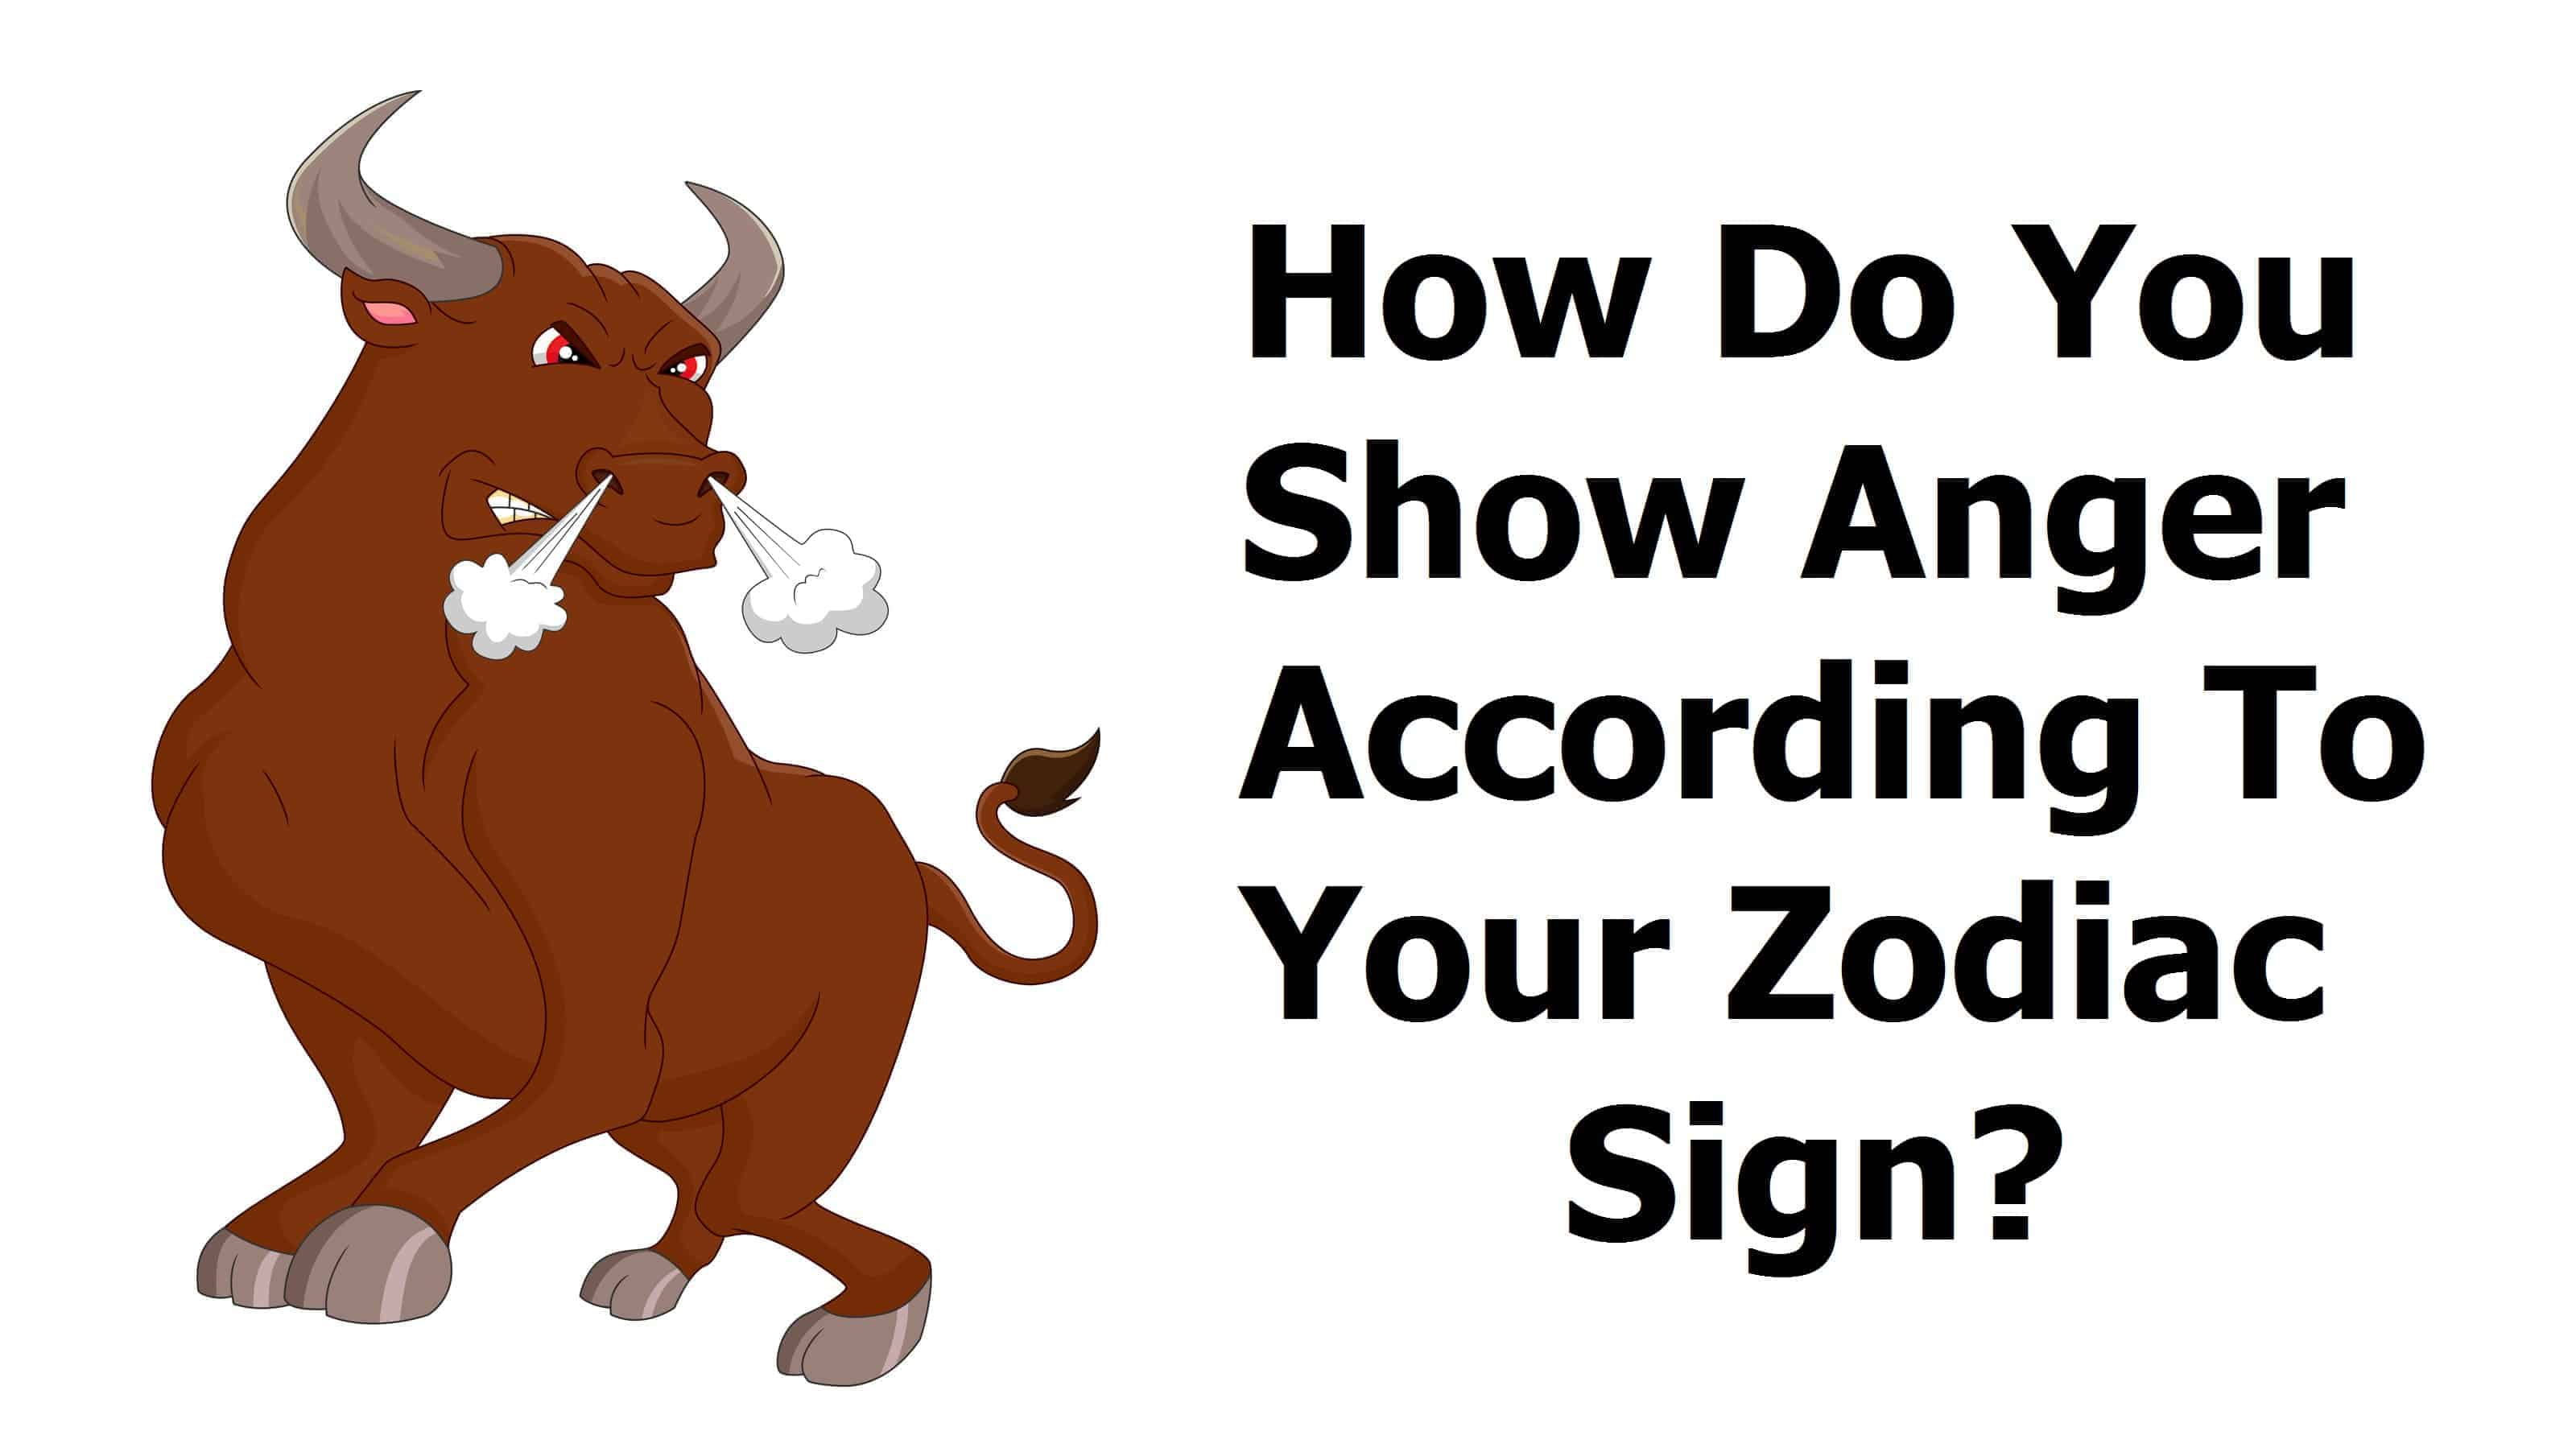 How Do You Show Anger According To Your Zodiac Sign?